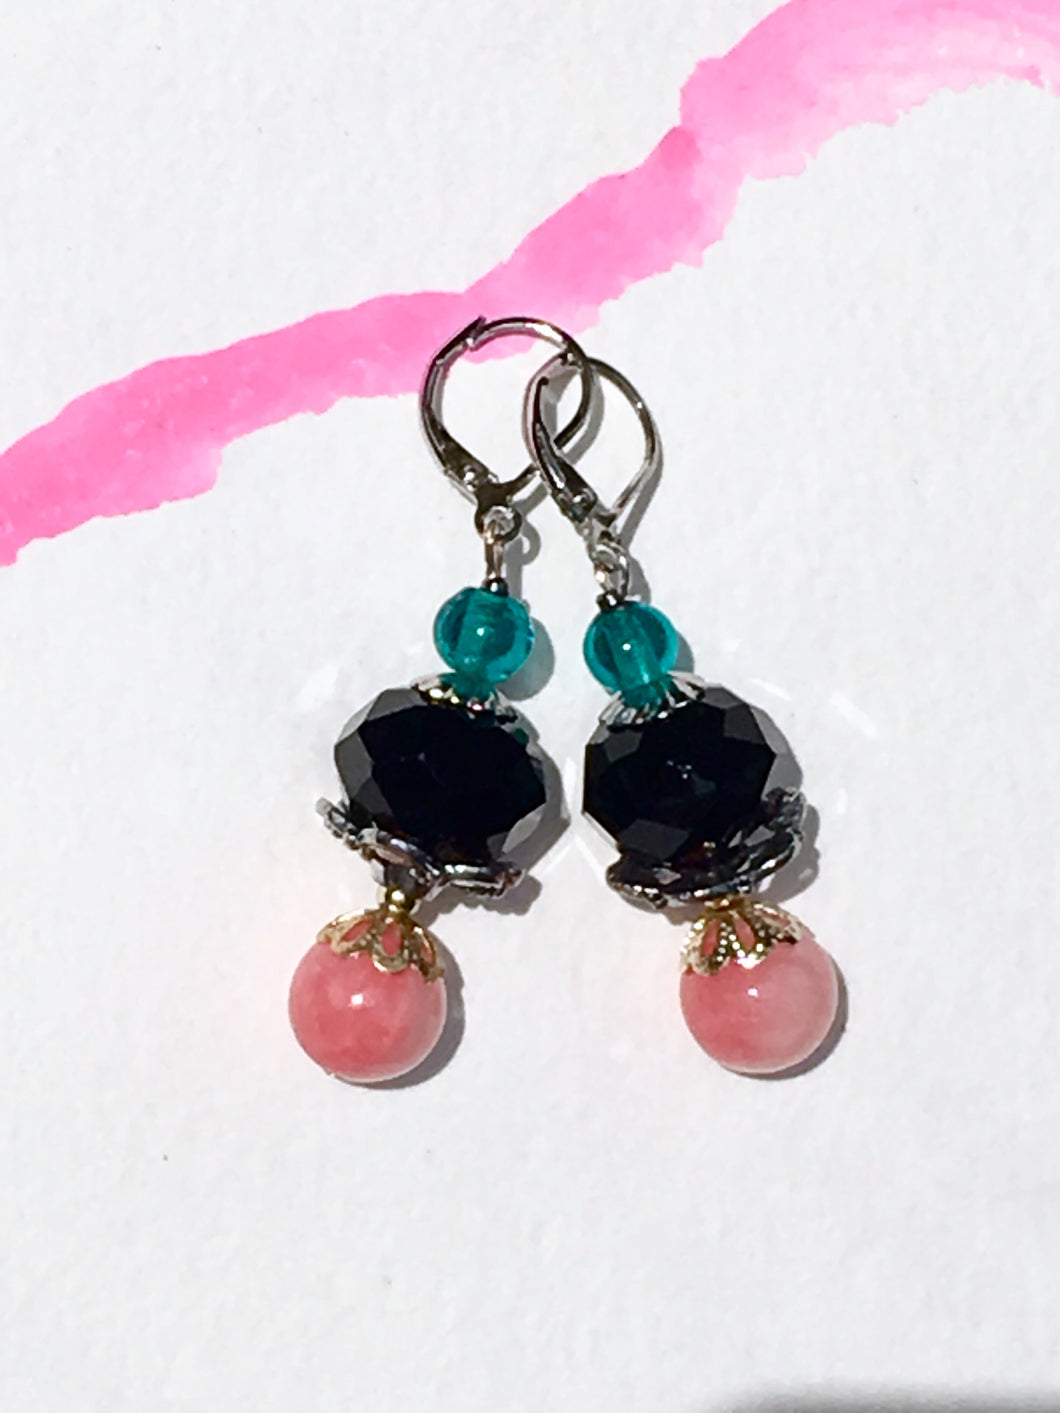 Black rose cut bead with pink rose quartzite and turquoise glass finial in silver latch back earring.